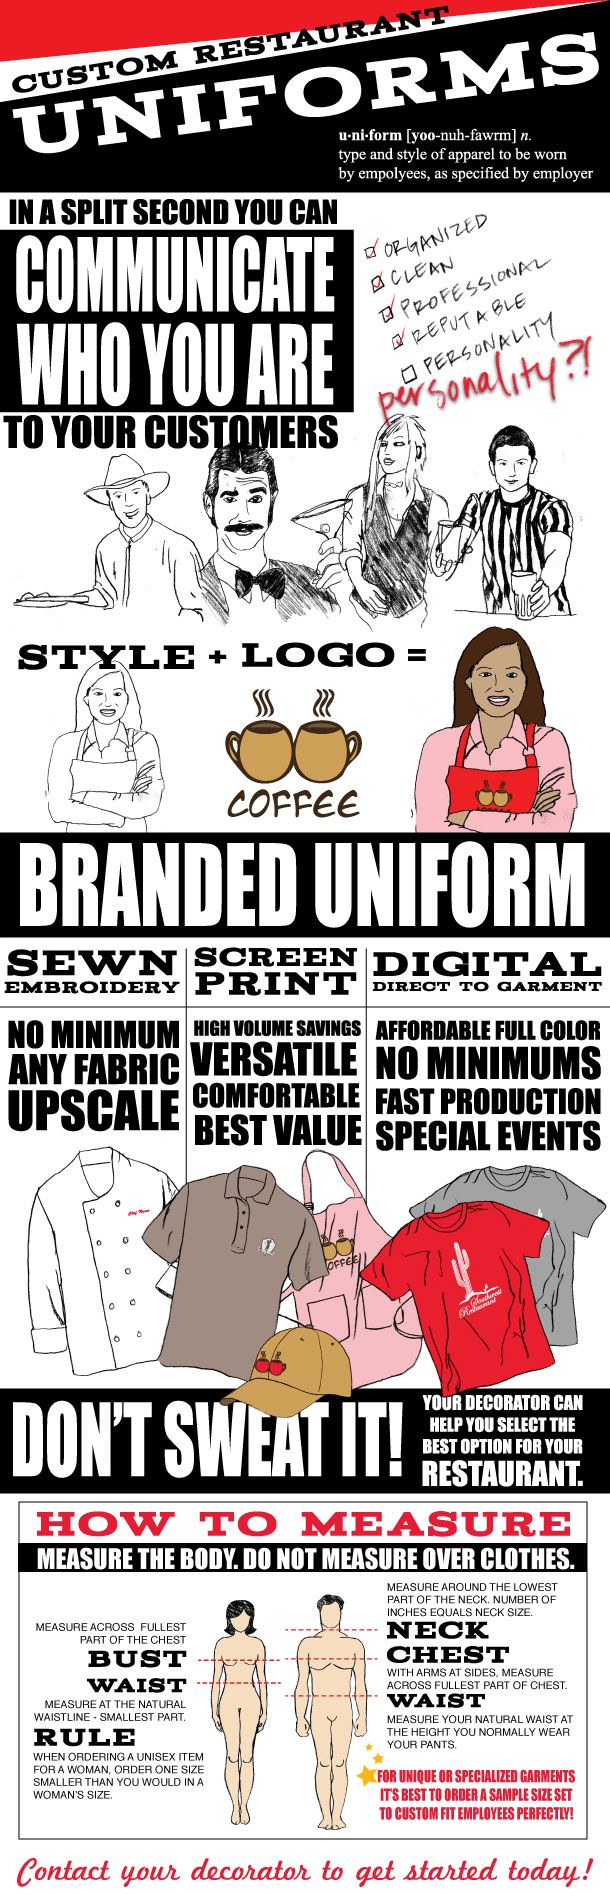 Custom Restaurant Uniforms    Purchasing custom uniforms for your restaurant may seem daunting, especially if you don't have experience. You may not know where to begin. So that's why we created this infographic that shows you just how simple and easy the process can be. Once you're through with the infographic, don't forget to download the FREE 8-step guide to custom restaurant uniforms.